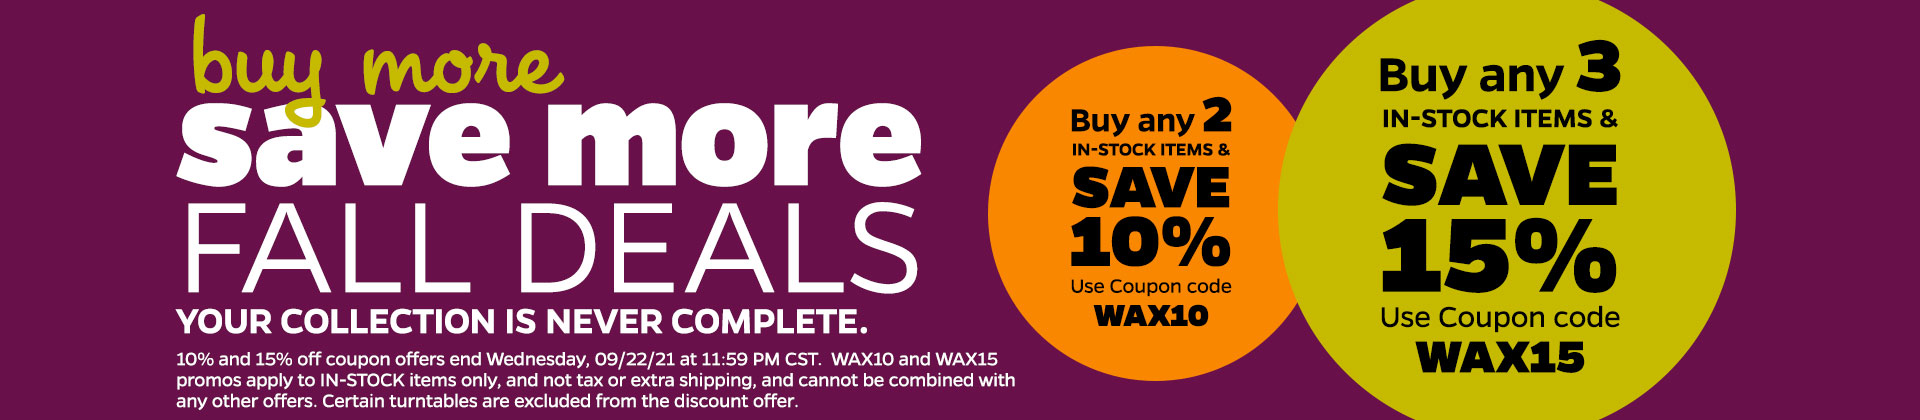 Buy More Save More Deals